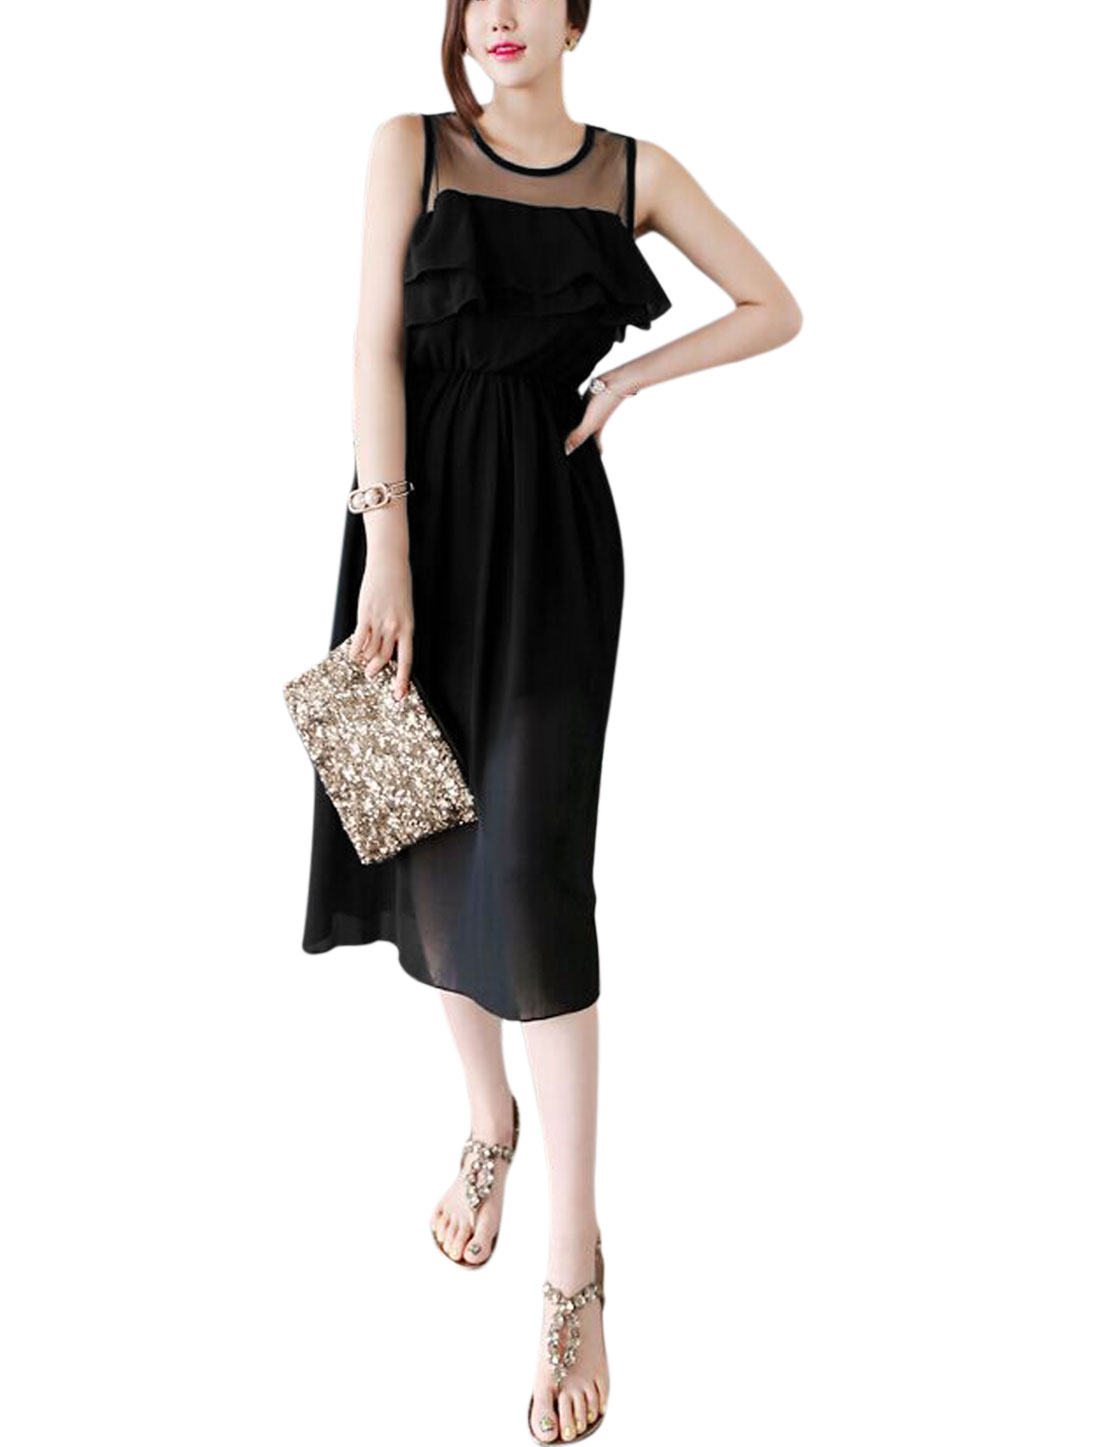 Ladies Round Neck Sleeveless Mesh Panel Casual Dresses Black M